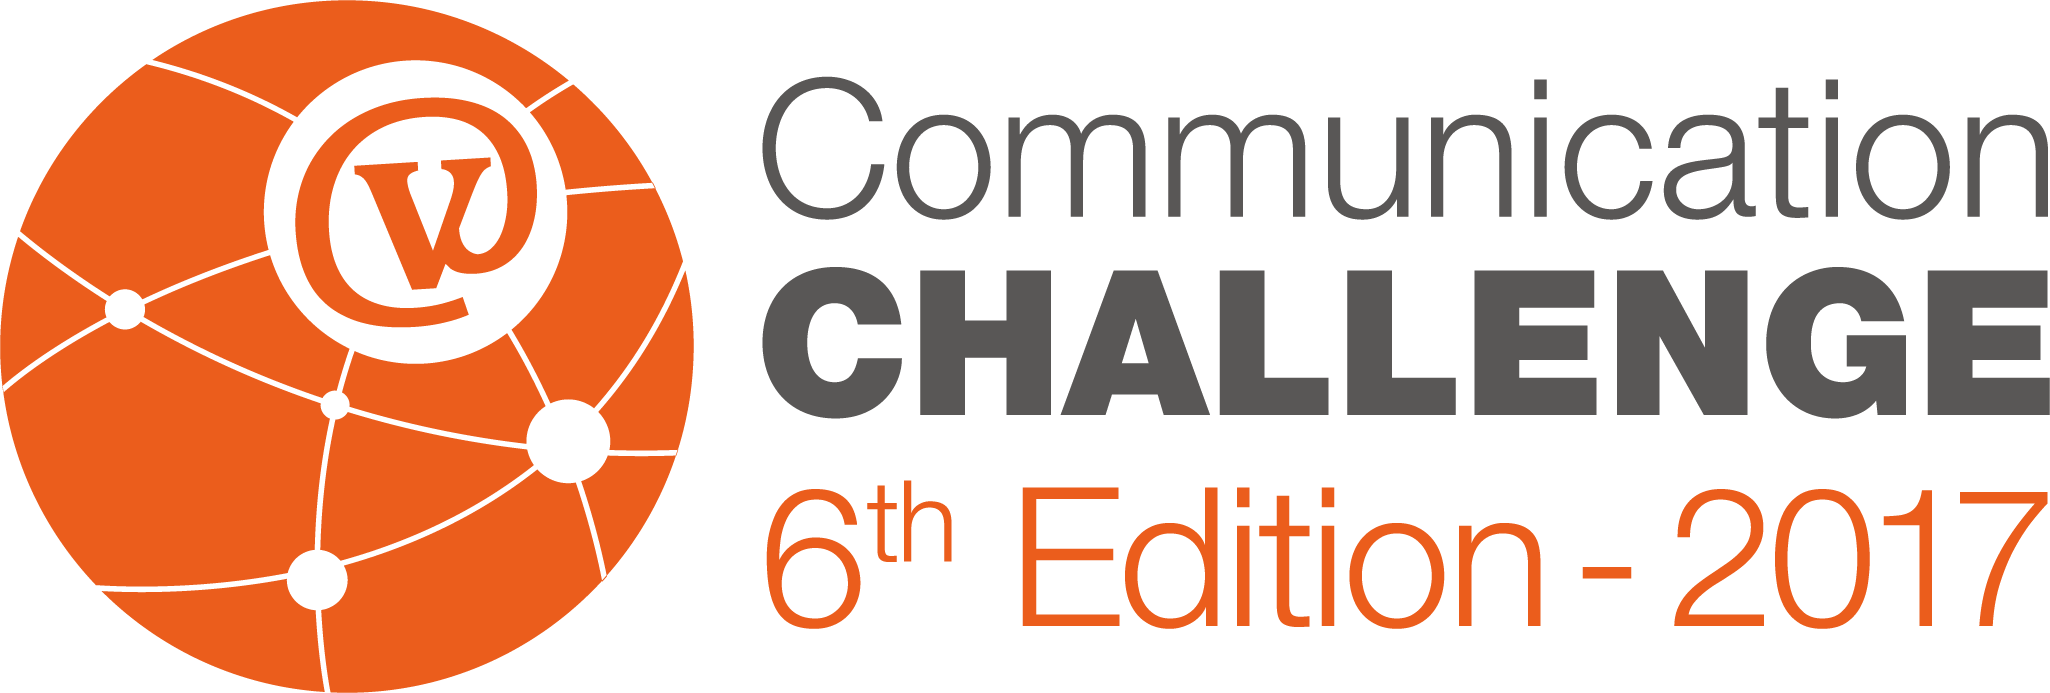 Communication Challenge 2017 - logo